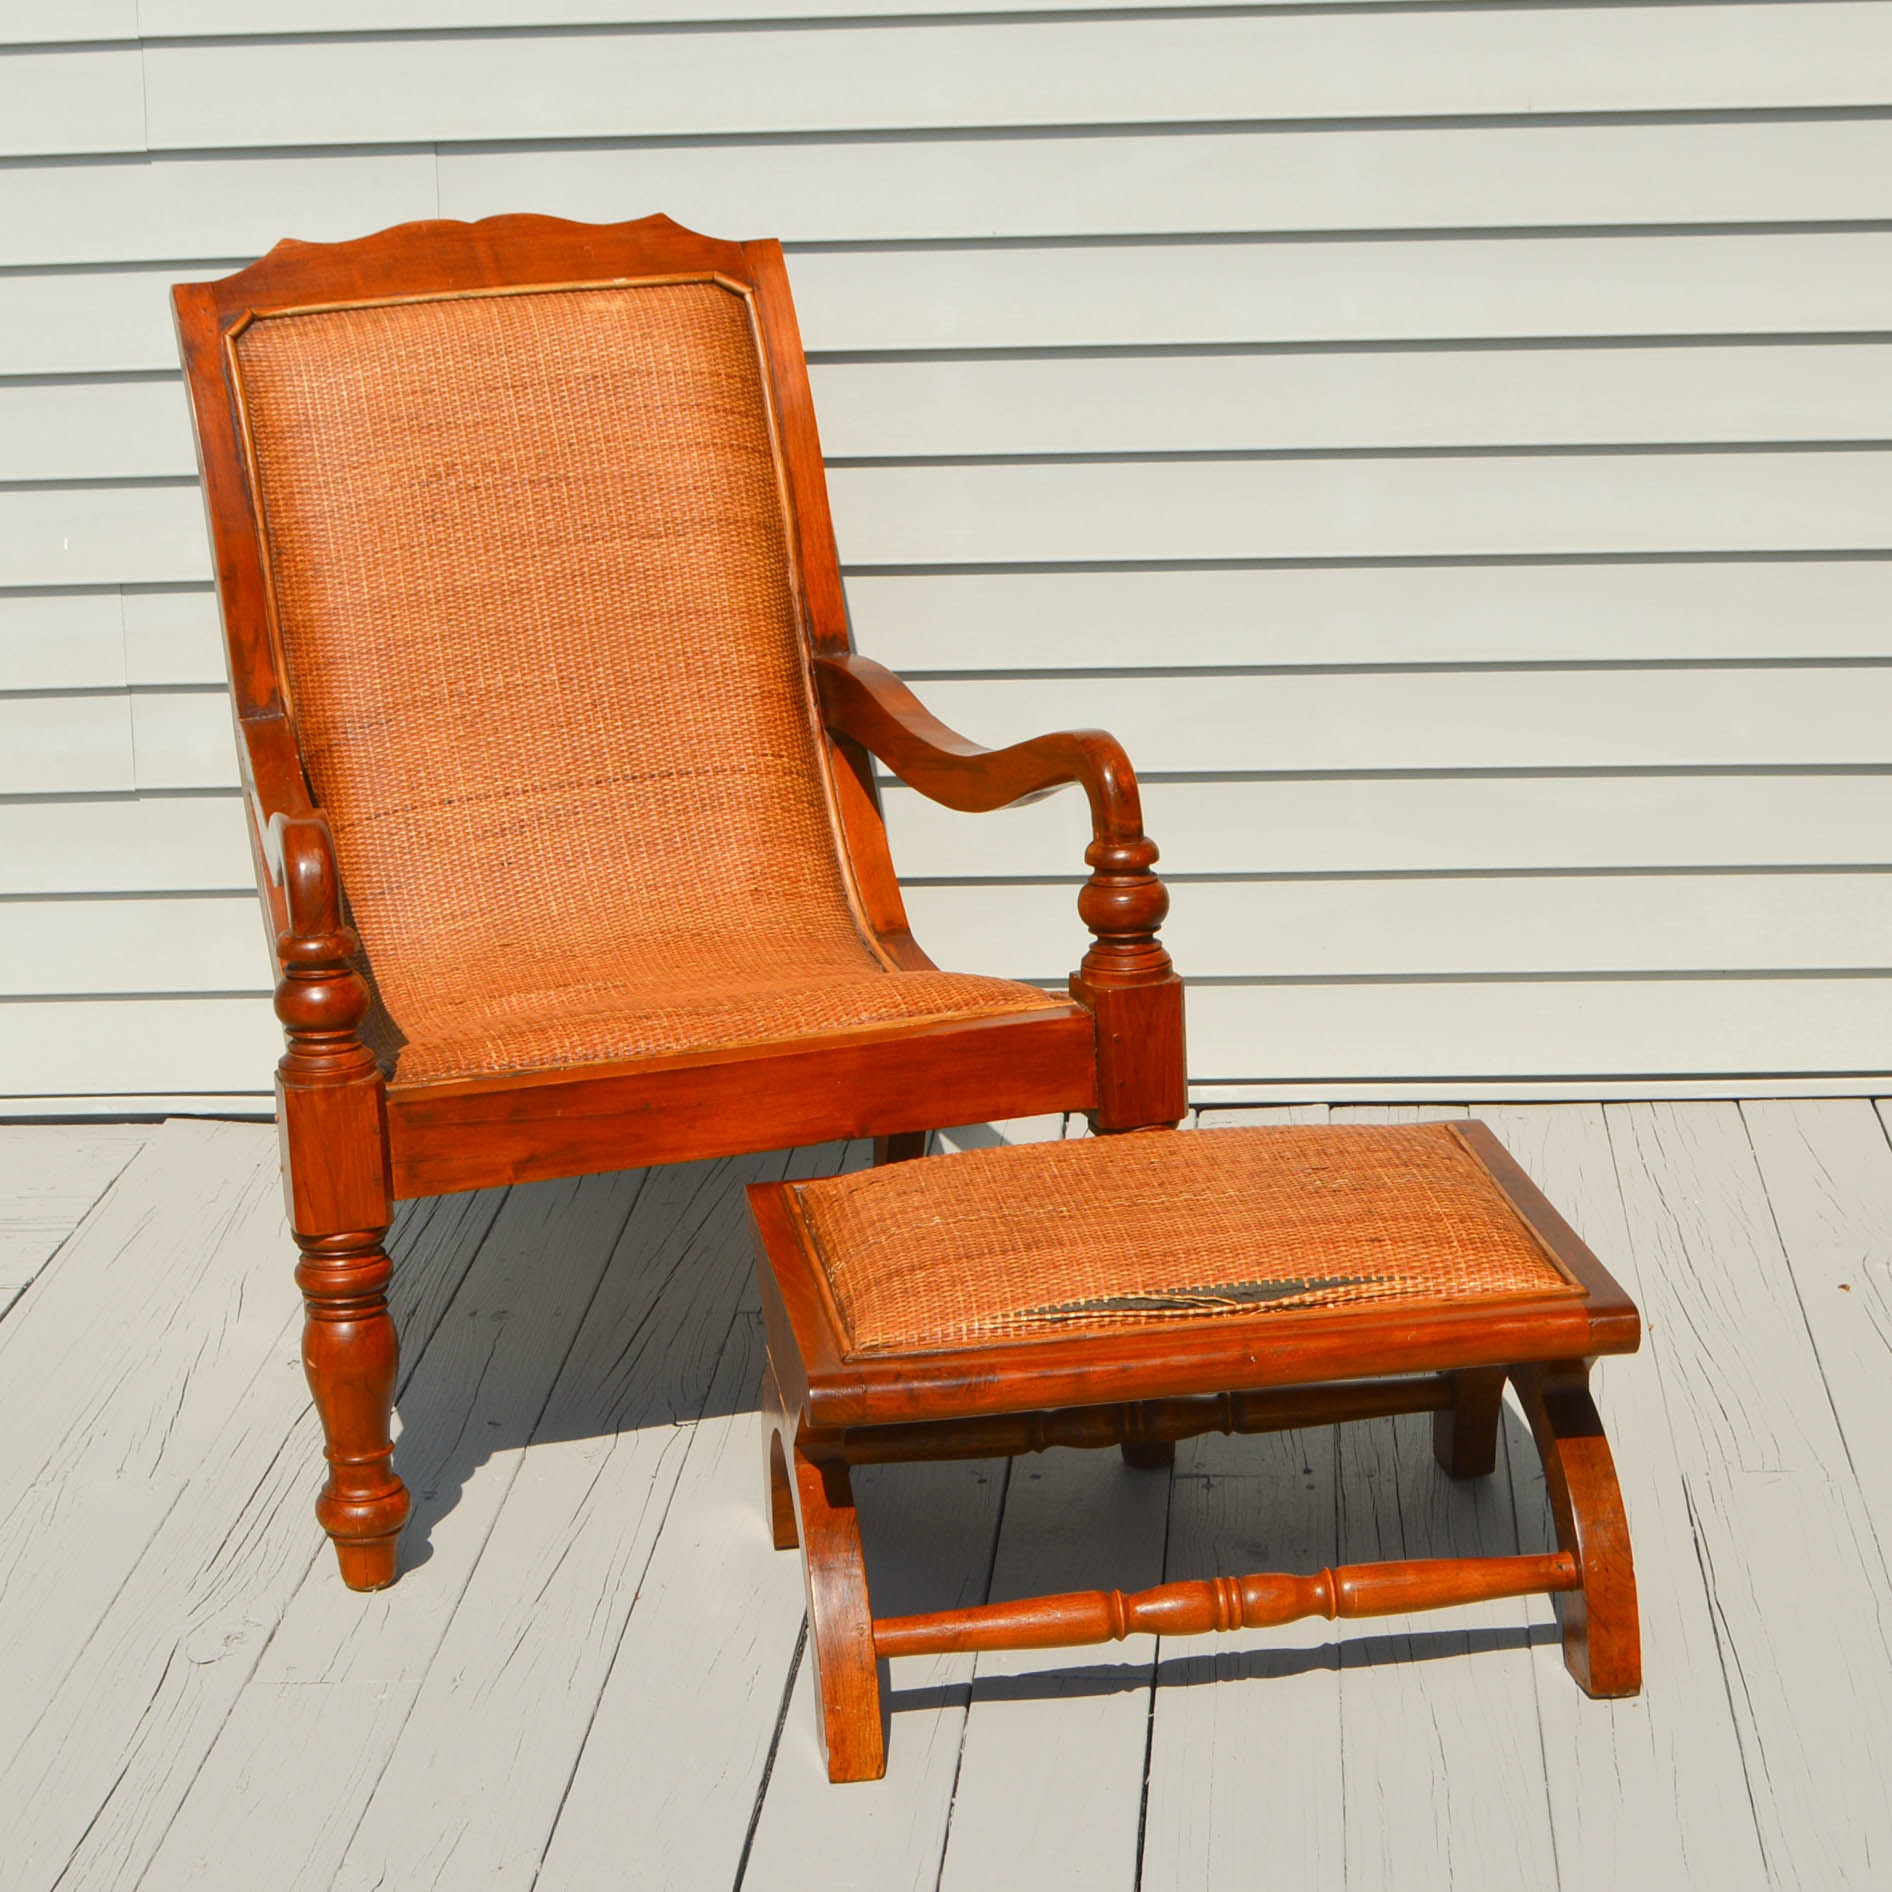 Vintage Arm Chair And Ottoman With Rattan Upholstery